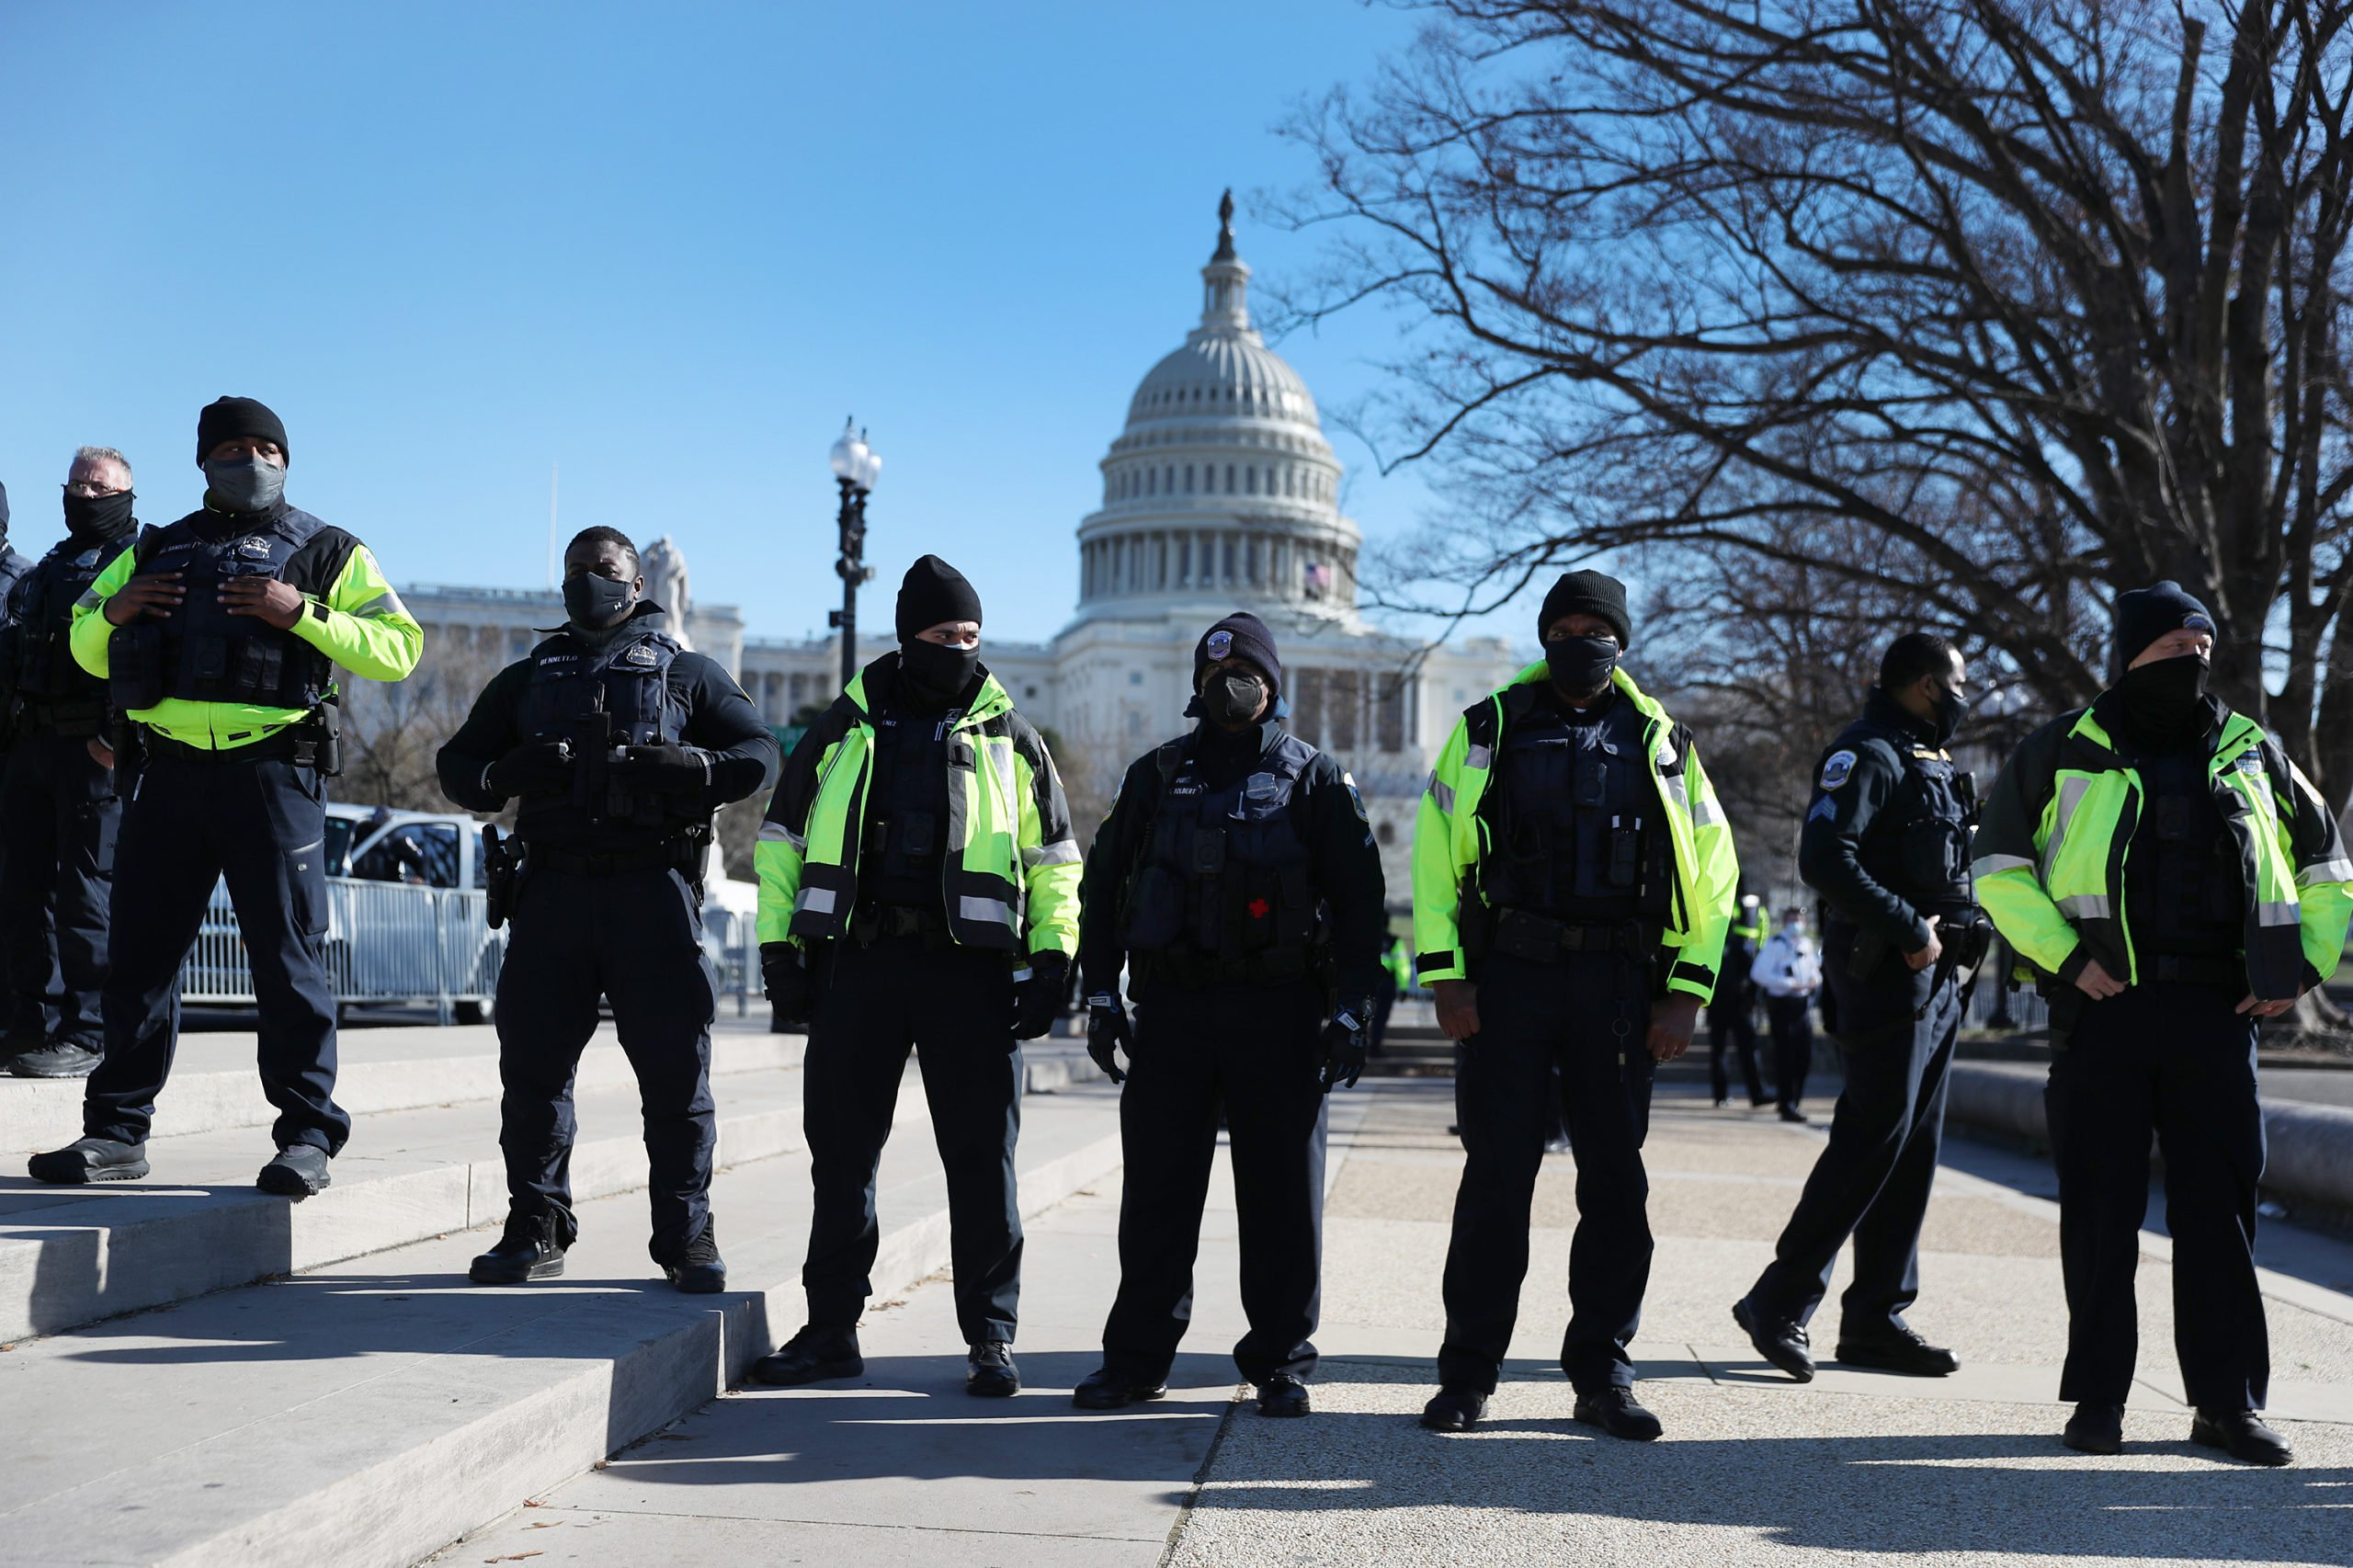 Members of the Metropolitan Police Department of the District of Columbia are seen in front of the U.S. Capitol a day after a pro-Trump mob broke into the building on January 07, 2021 in Washington, DC. (Photo by Joe Raedle/Getty Images)